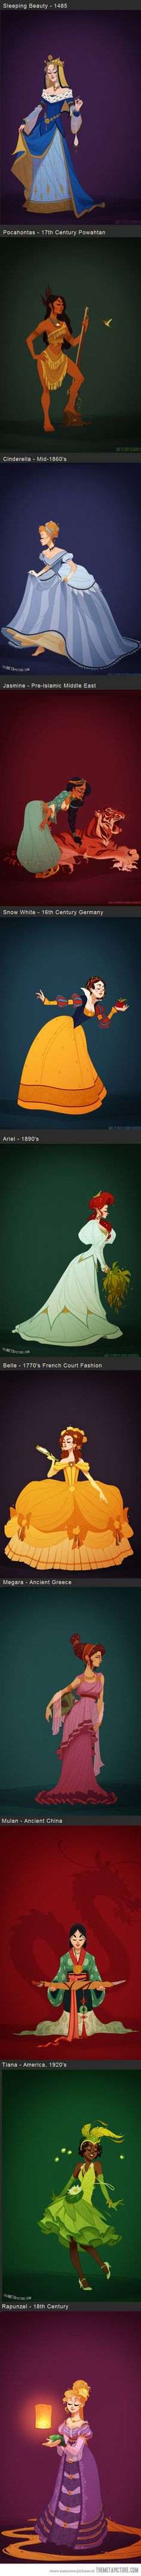 Disney Princesses in accurate period costume…love this.. Ariel is gorgeous.